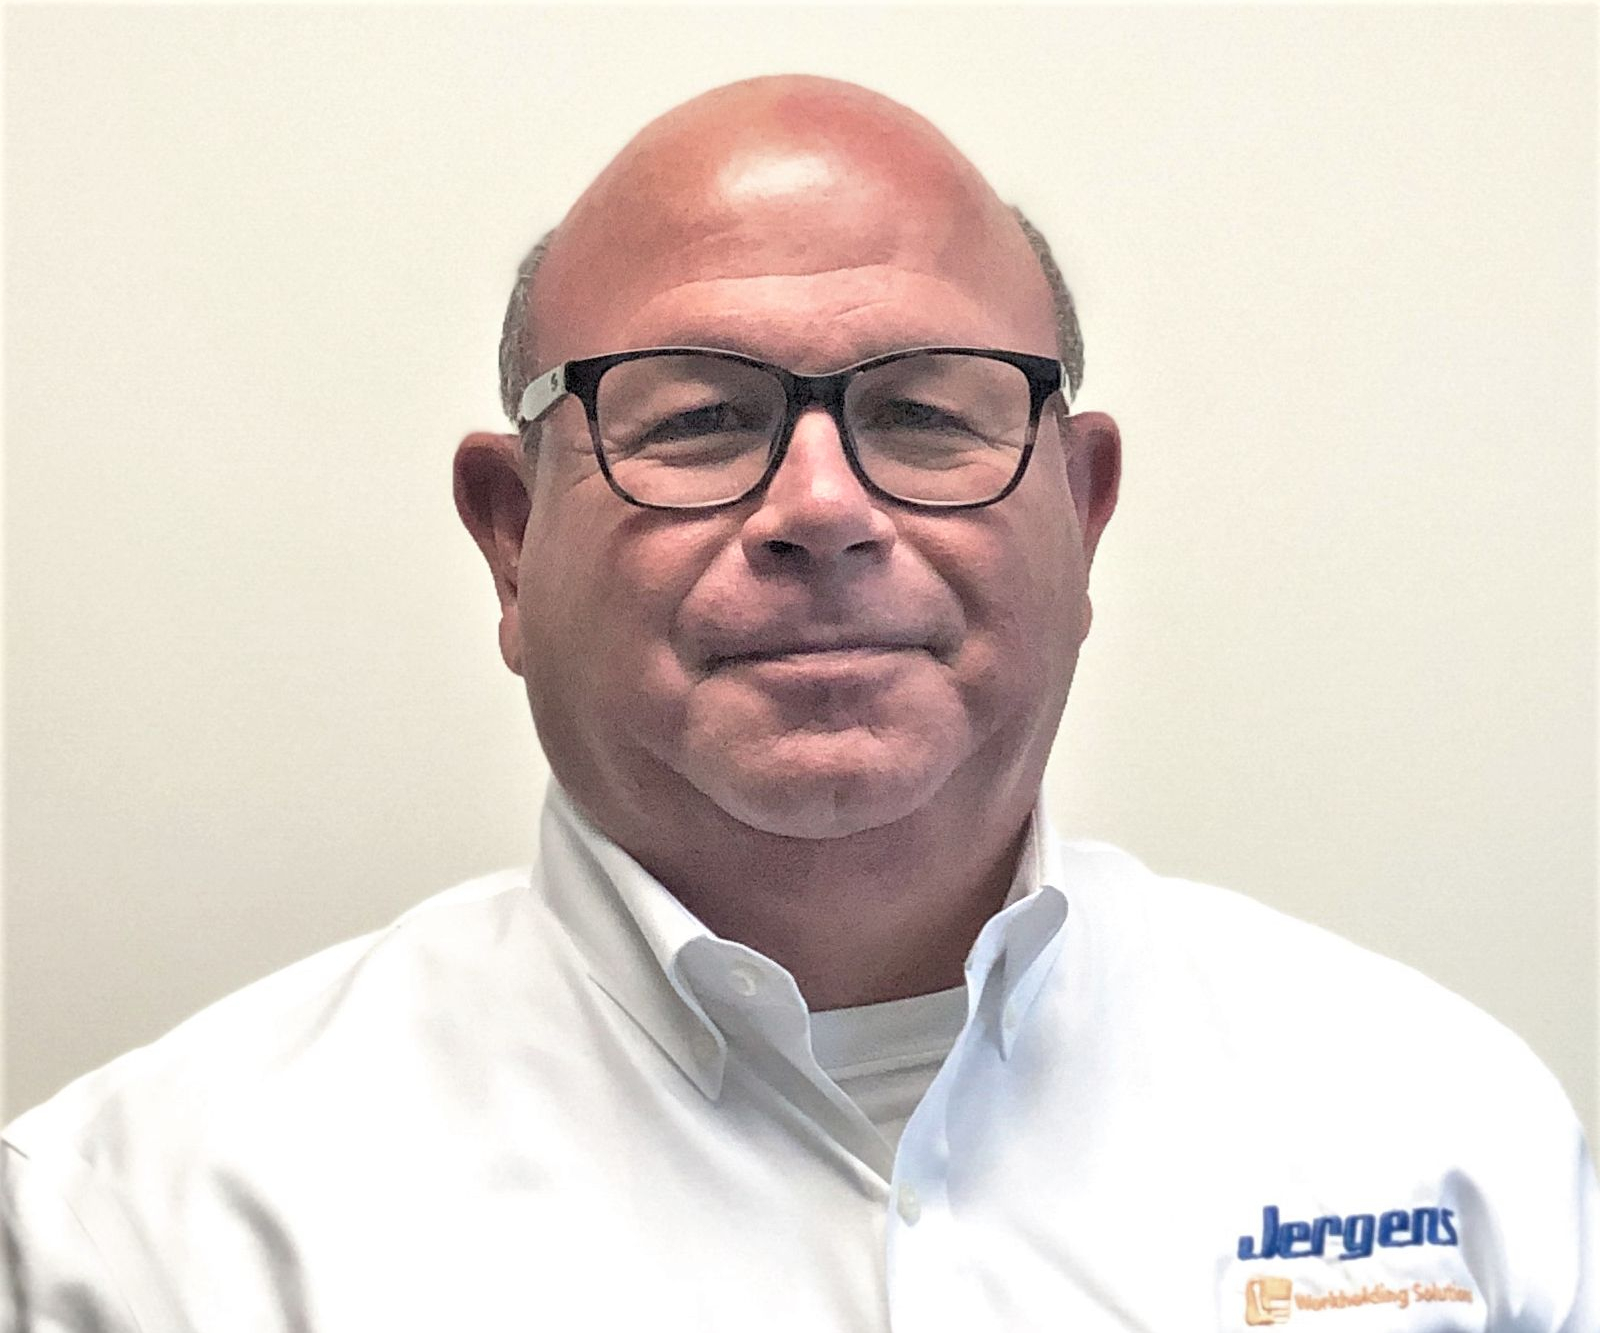 Ken Marvar from Jergens, Inc.